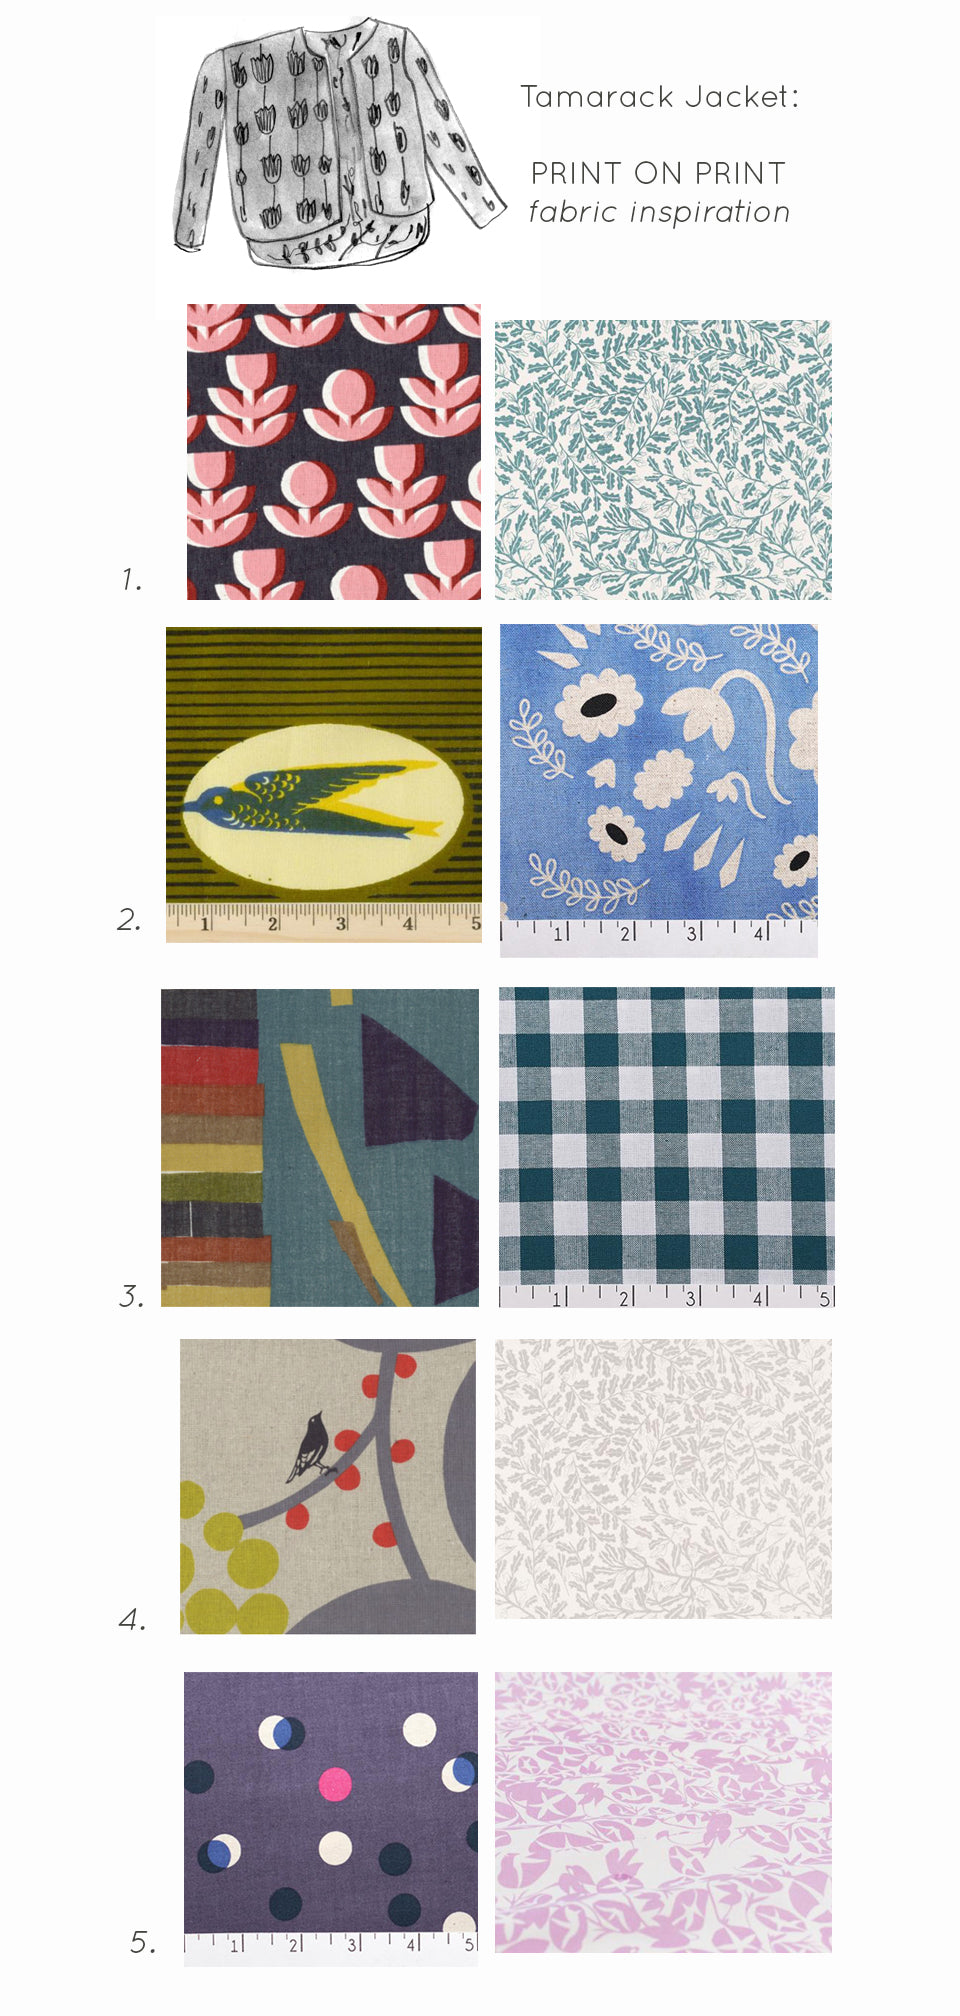 Tamarack Fabric Inspiration Print on Print by Sara Parker Textiles